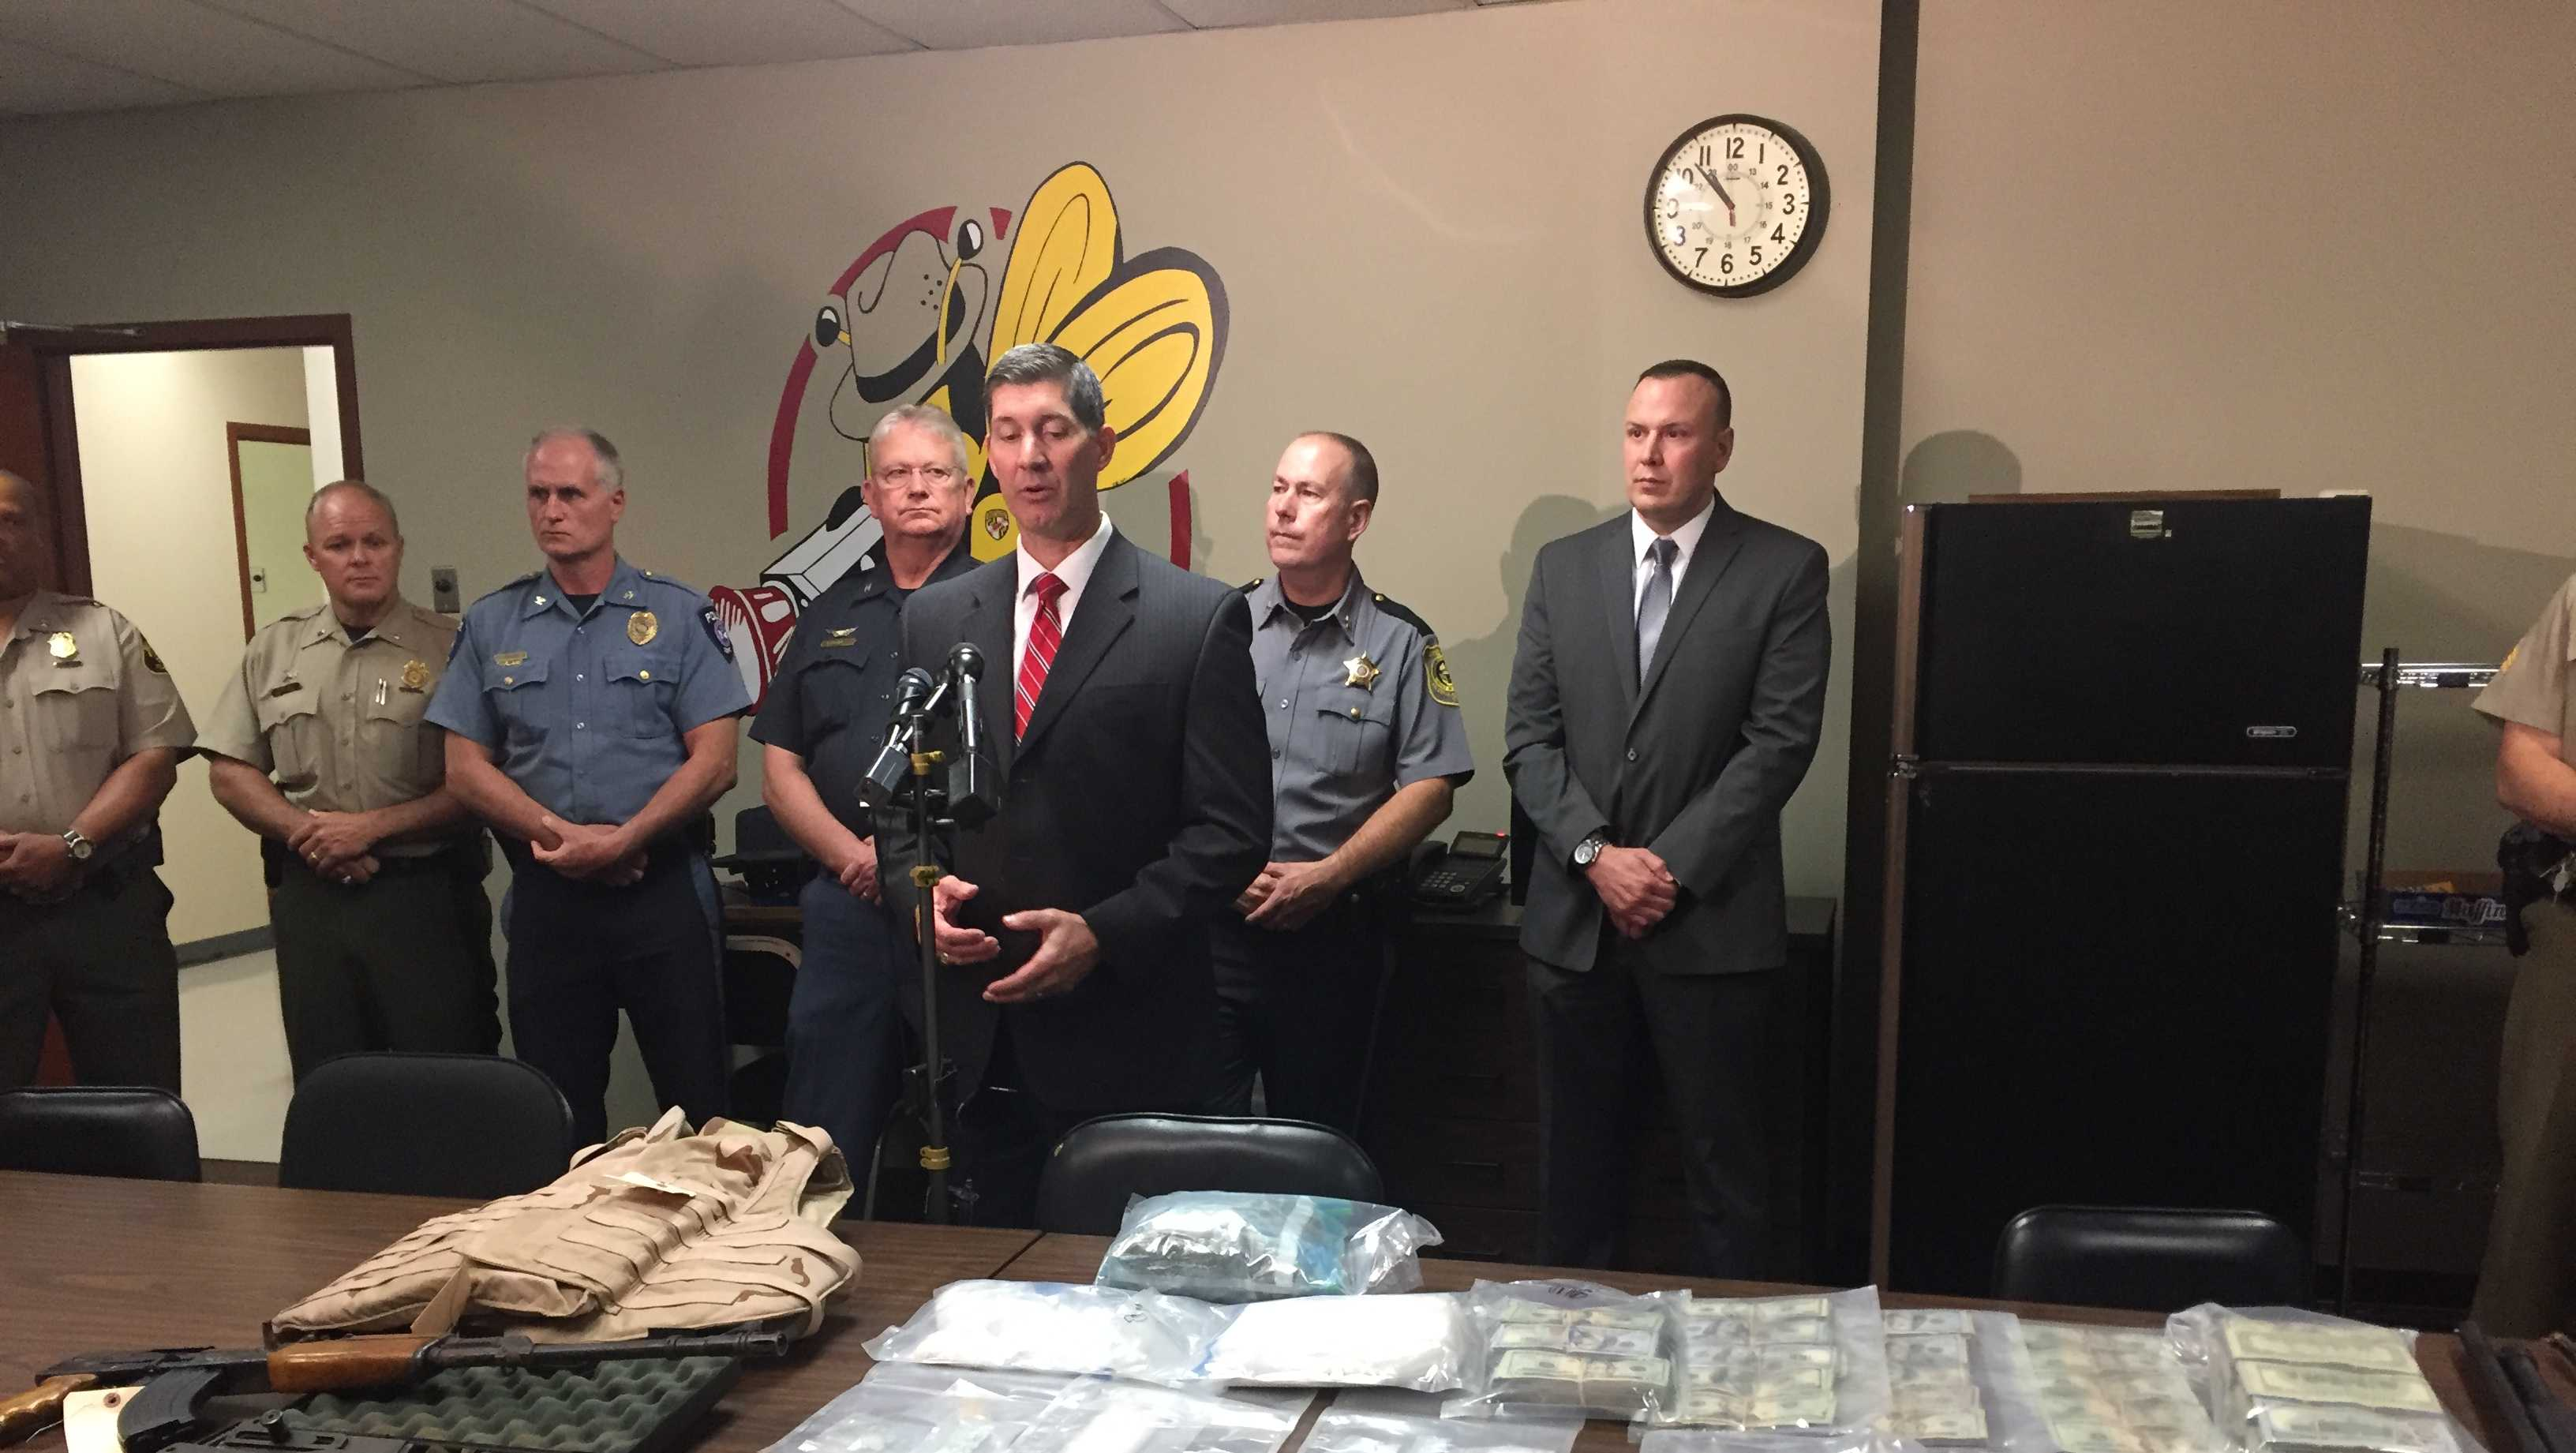 Police bust multistate drug ring